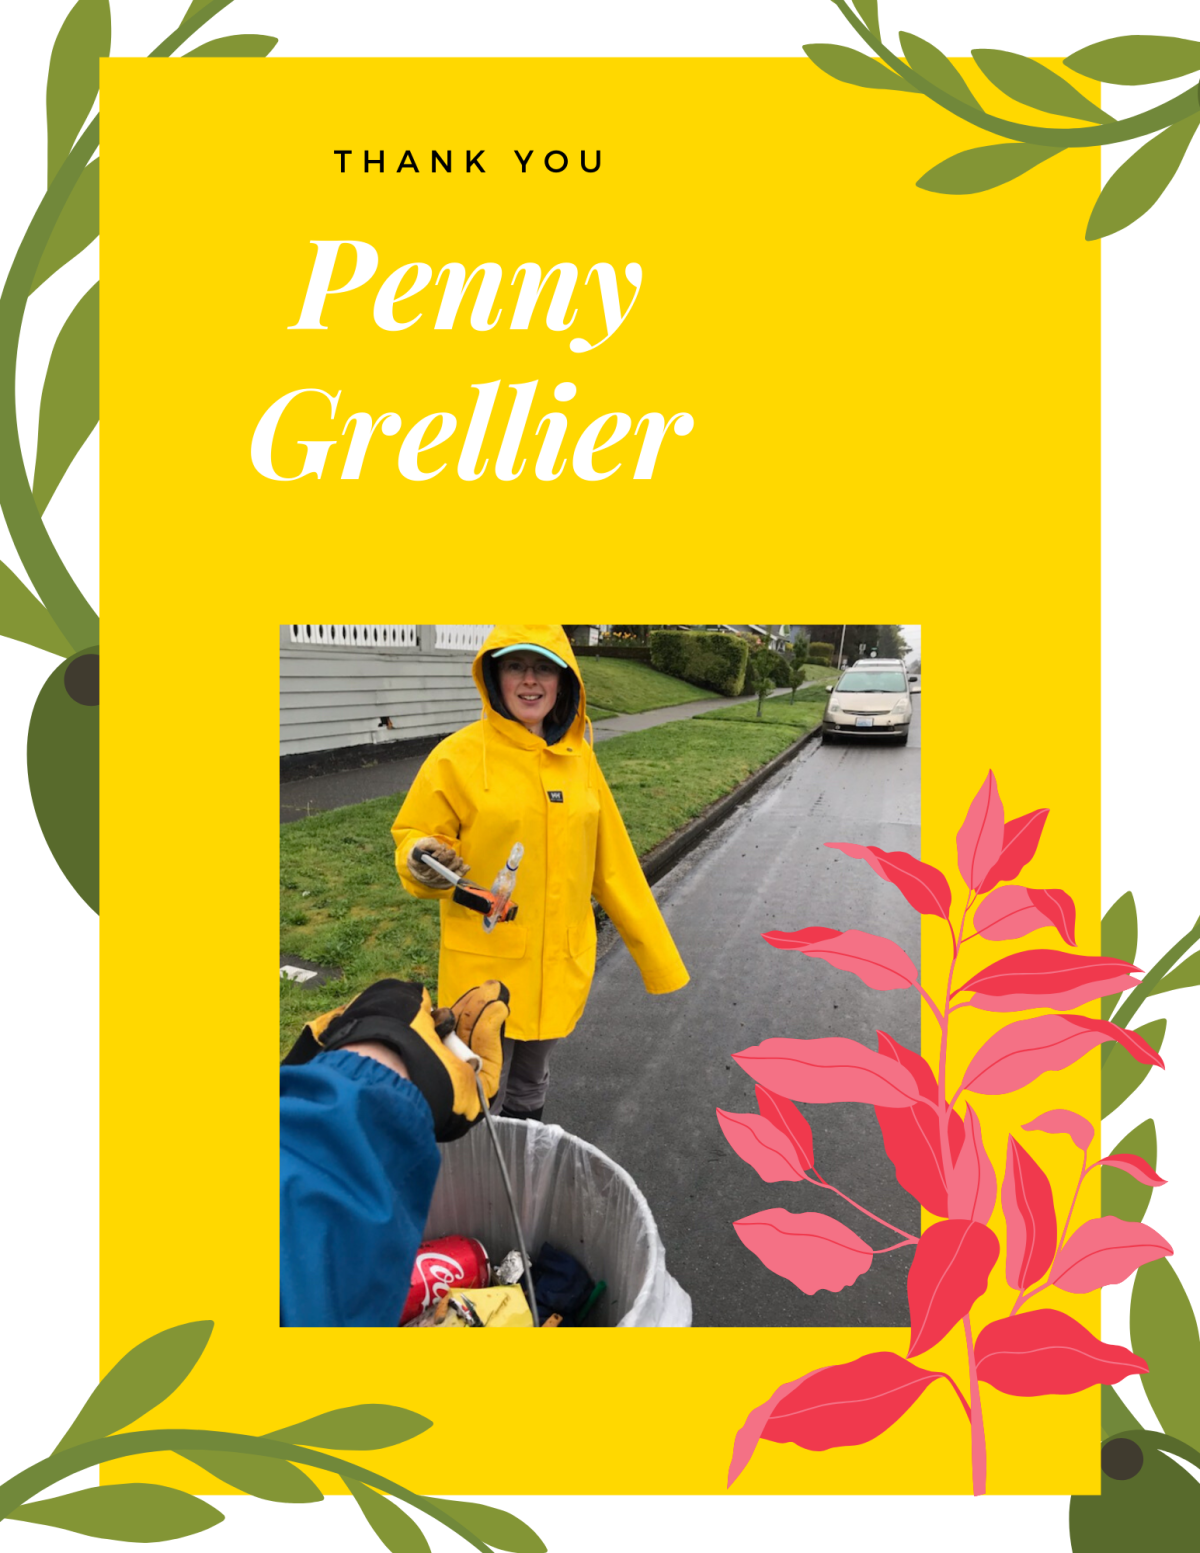 Thank You Penny Grellier!